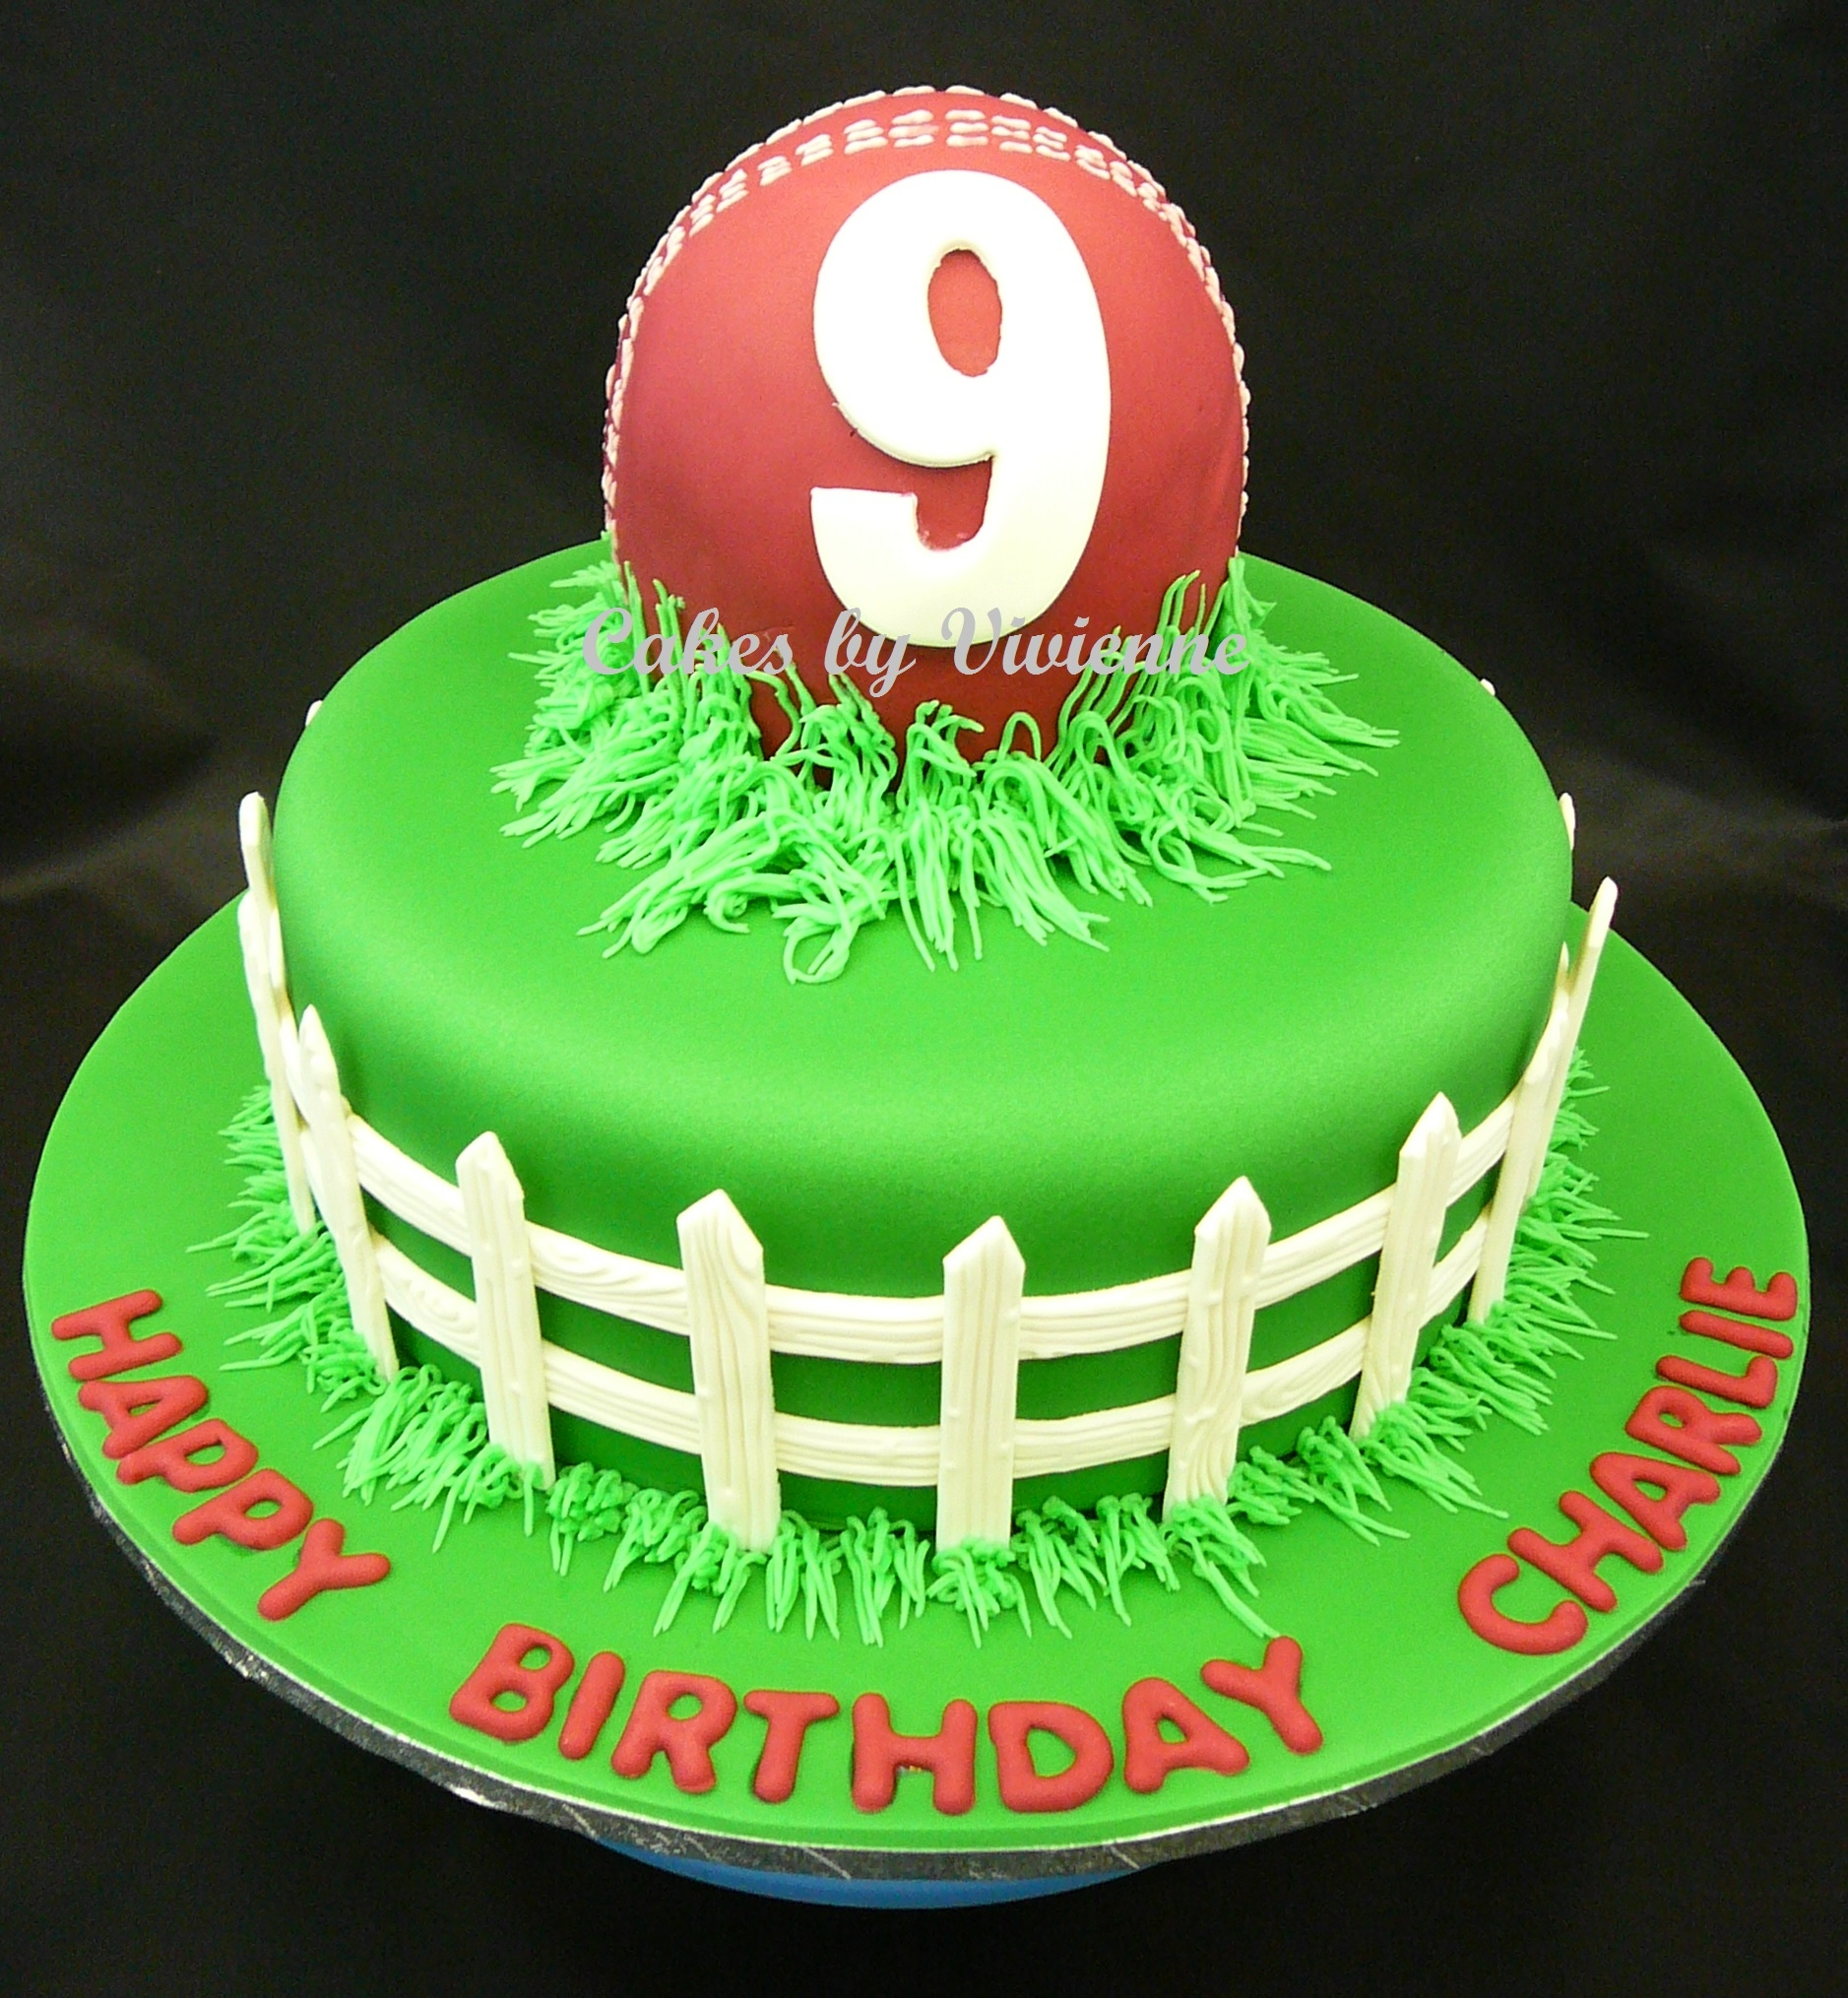 Cricket Birthday Cake - CakeCentral.com